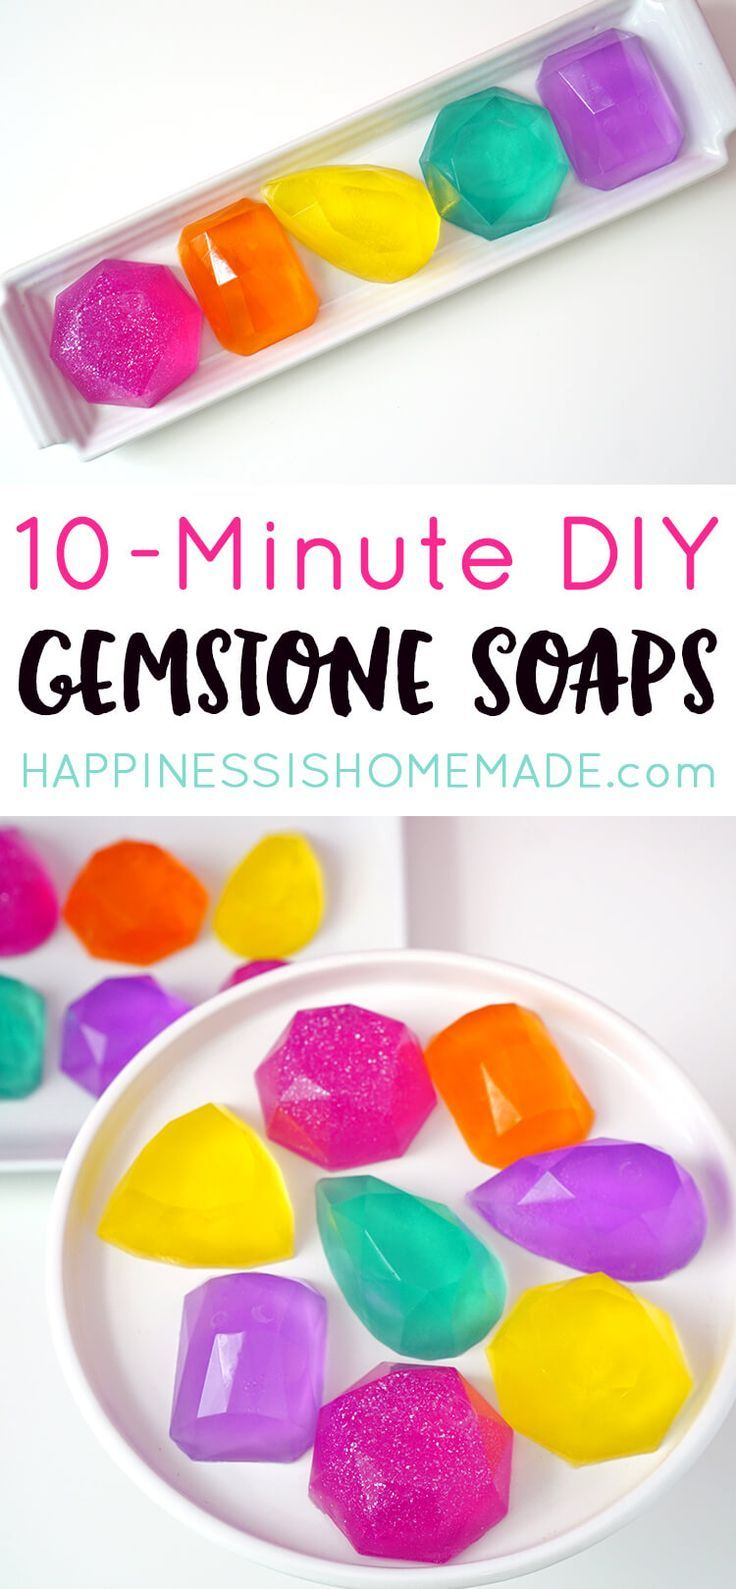 Make your own DIY Gemstone Soaps in around 10 minutes! These sparkly gem and jewel soaps shimmer, shine, and smell AMAZING (in any fragrance your heart desires!)! Makes a great quick and easy DIY homemade holiday gift idea that's perfect for friends, fami